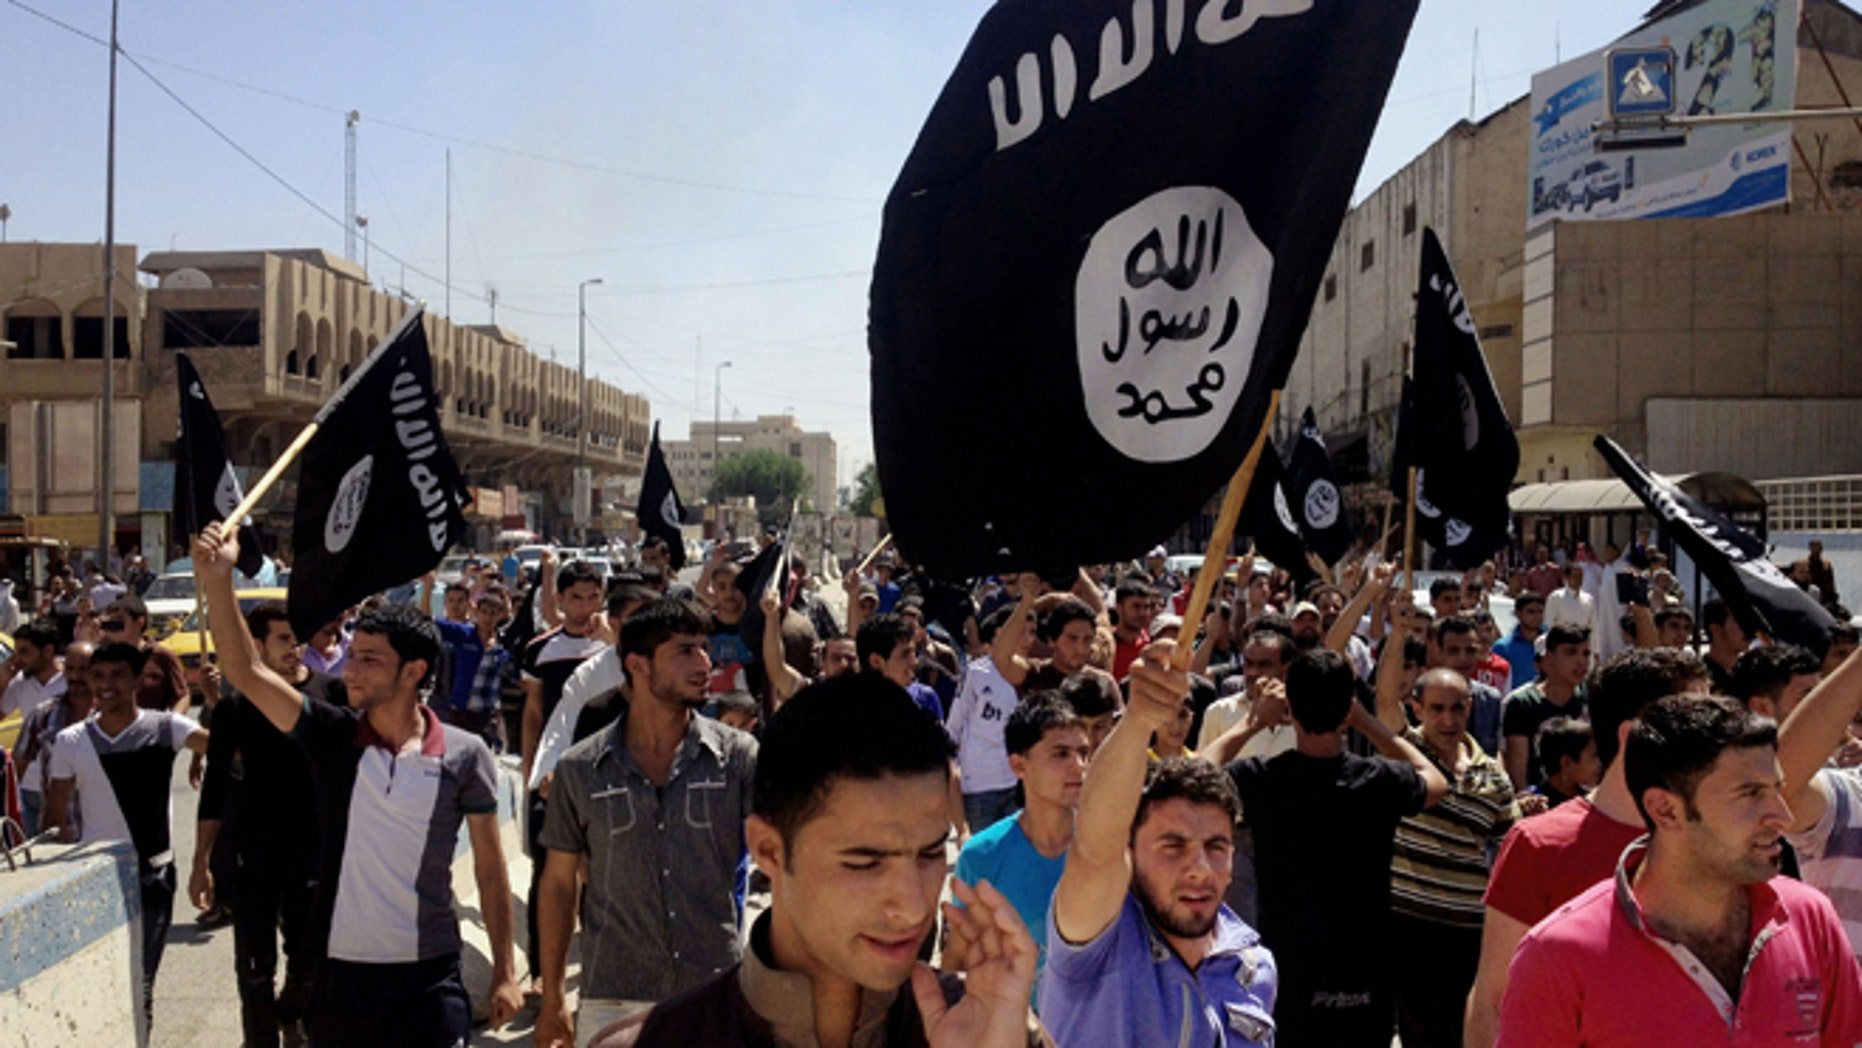 In this June 16, 2014 file photo, demonstrators chant pro-Islamic State group slogans as they carry the group's flags in front of the provincial government headquarters in Mosul, Baghdad.